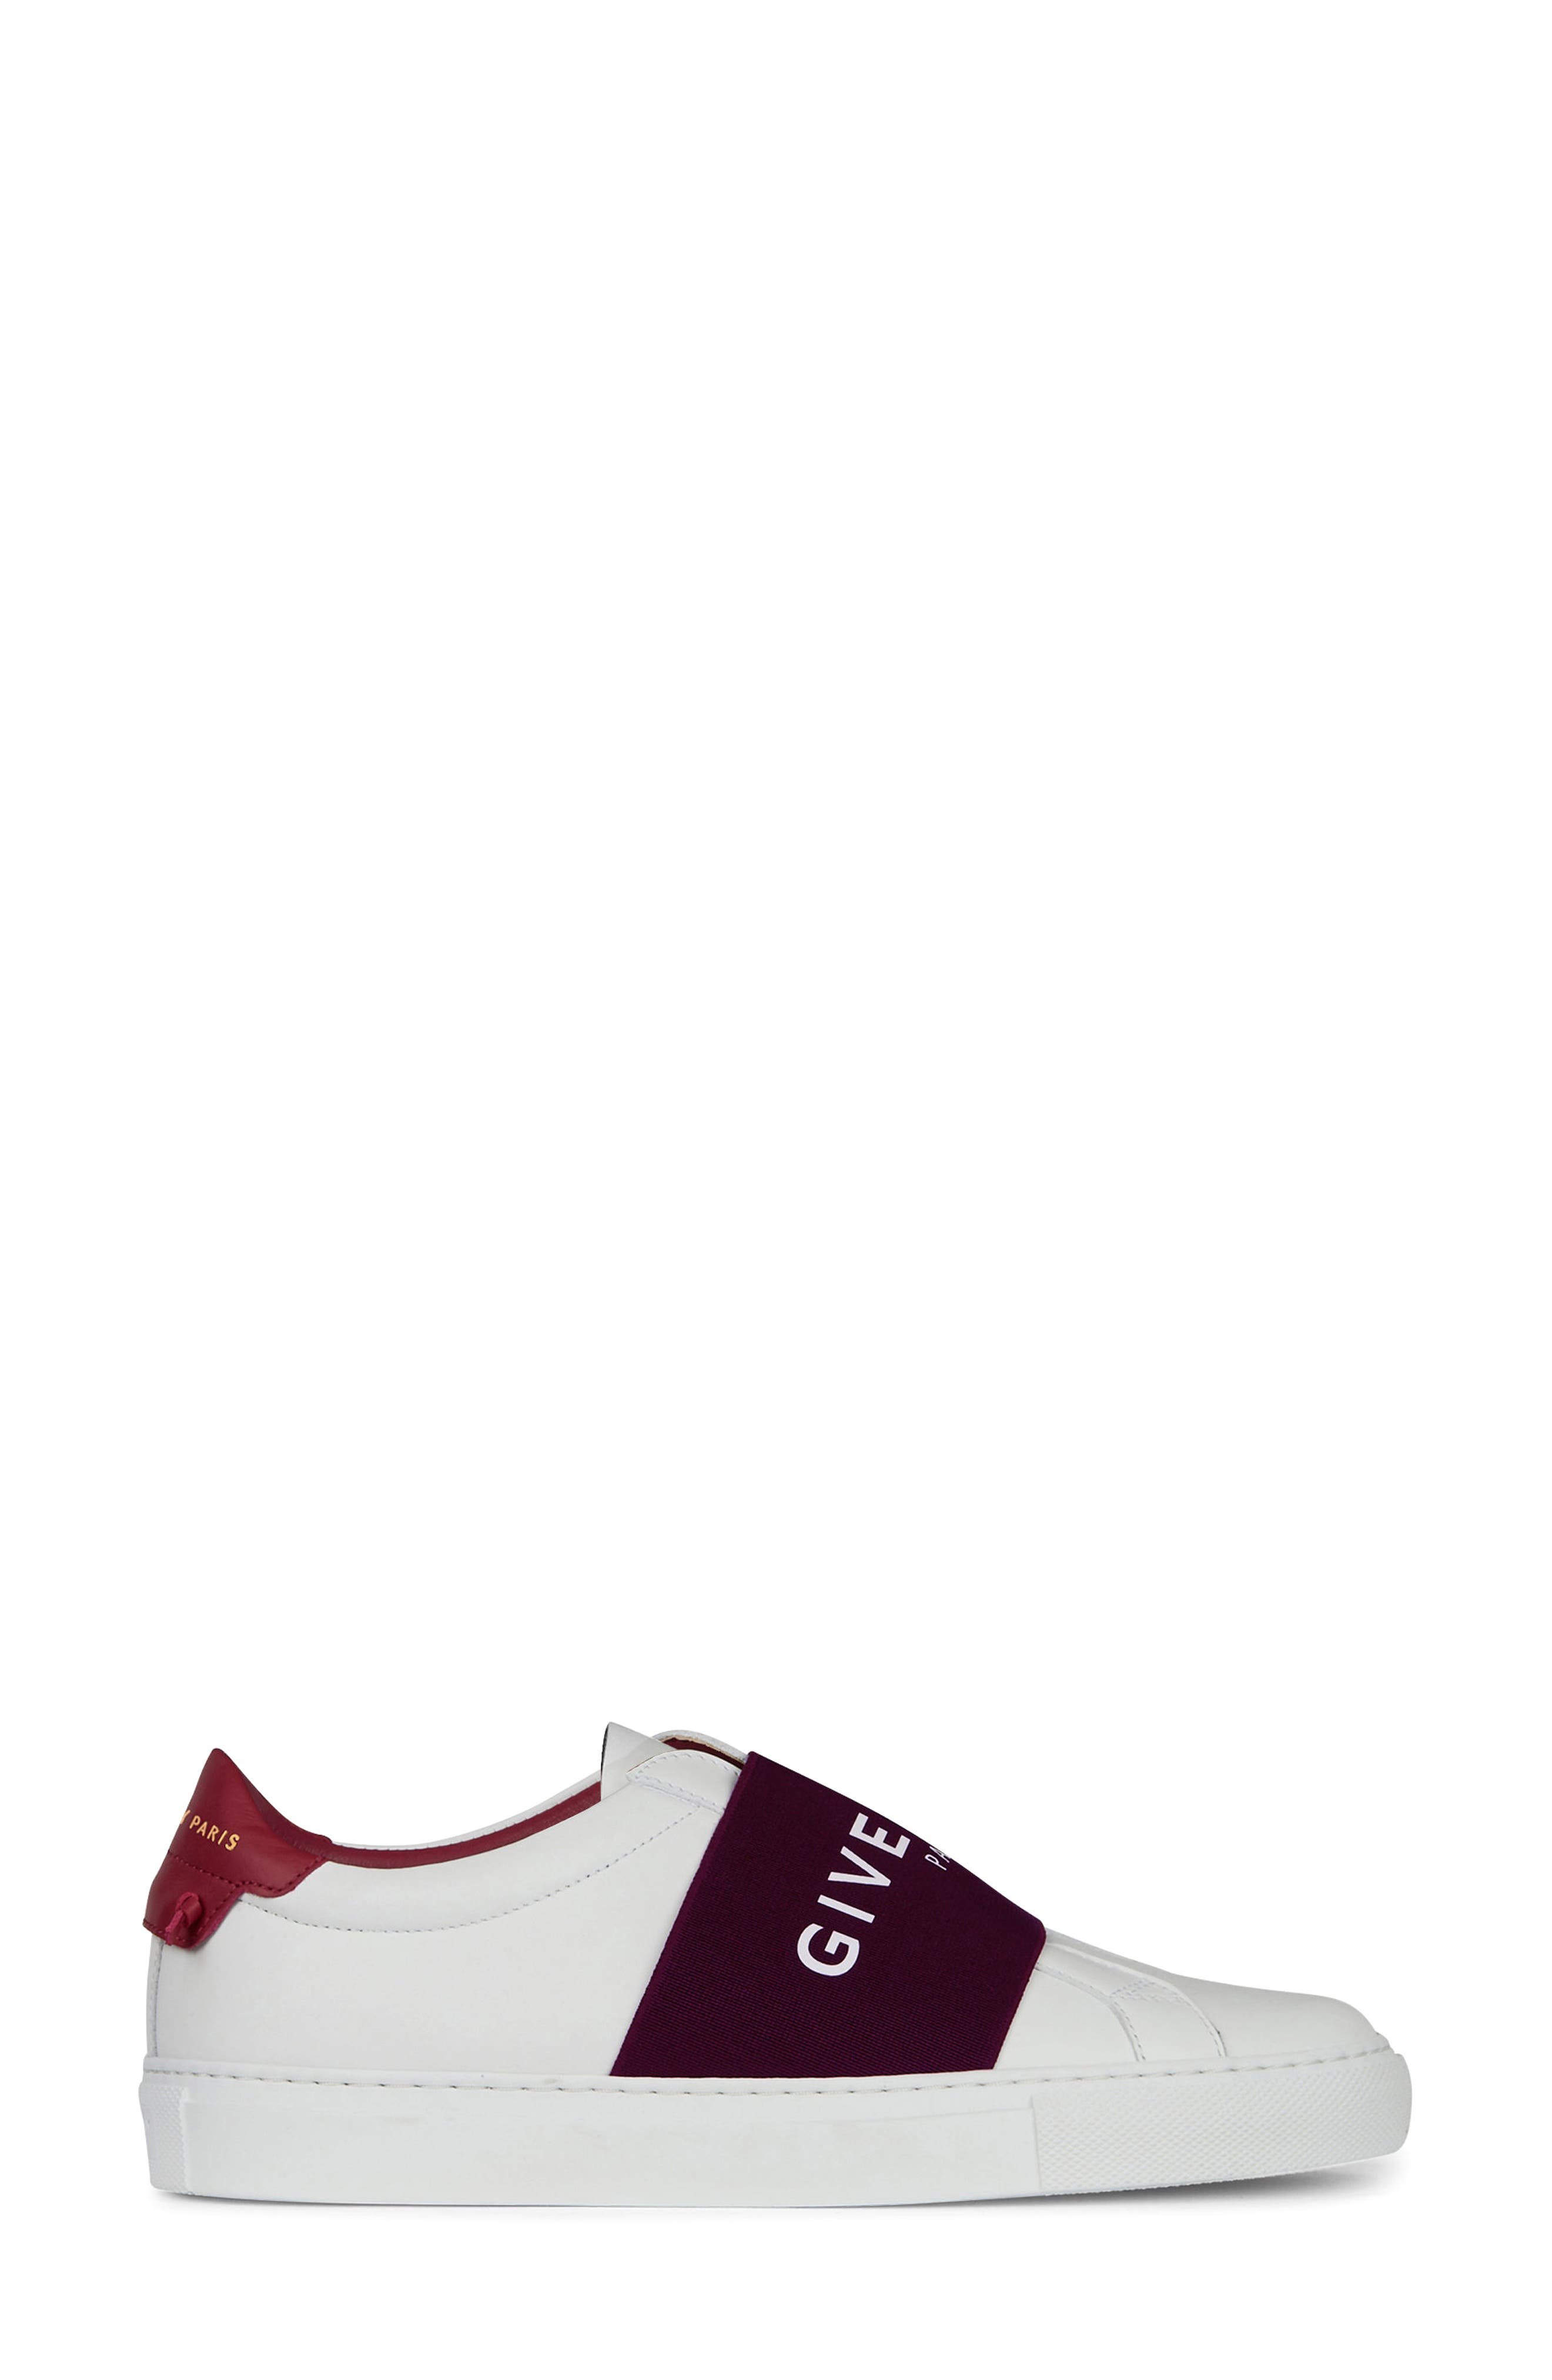 Givenchy Logo Strap Slip-On Sneaker (Women) (Nordstrom Exclusive)